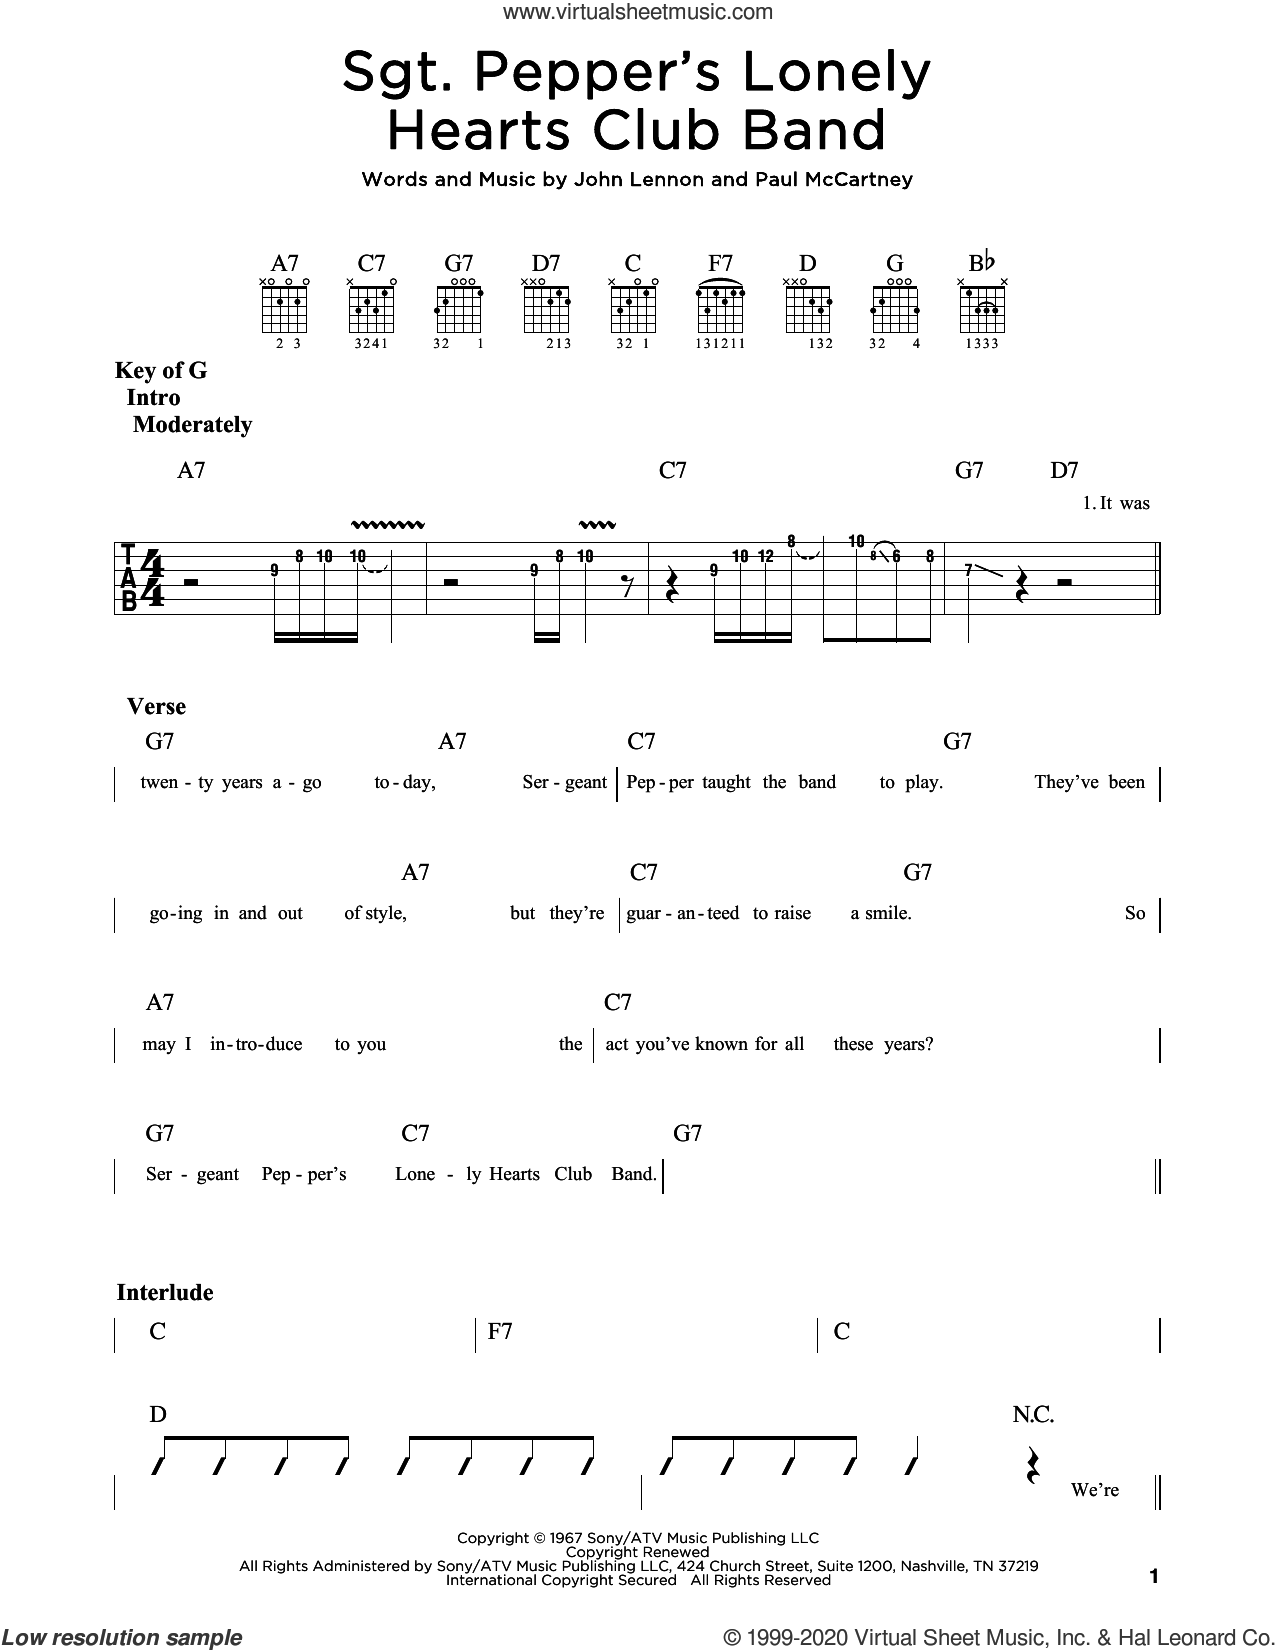 Sgt. Pepper's Lonely Hearts Club Band sheet music for guitar (rhythm tablature) by The Beatles, John Lennon and Paul McCartney, intermediate skill level